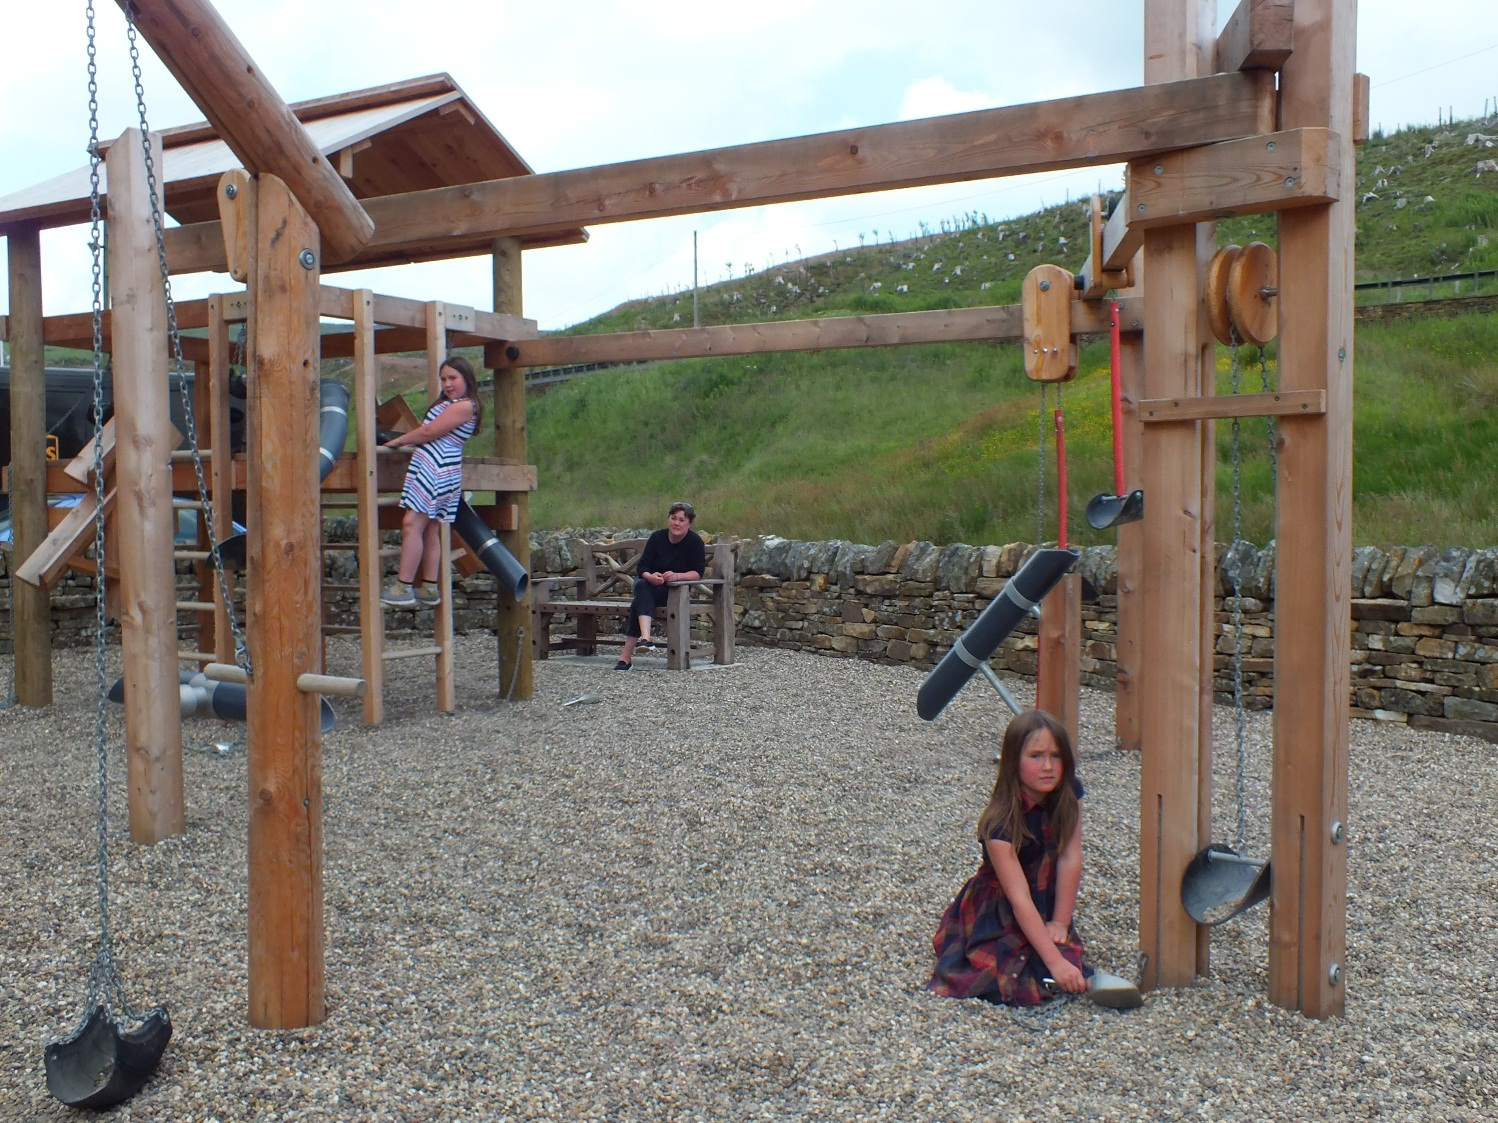 Playtime at Museum as New Play Park is Unveiled